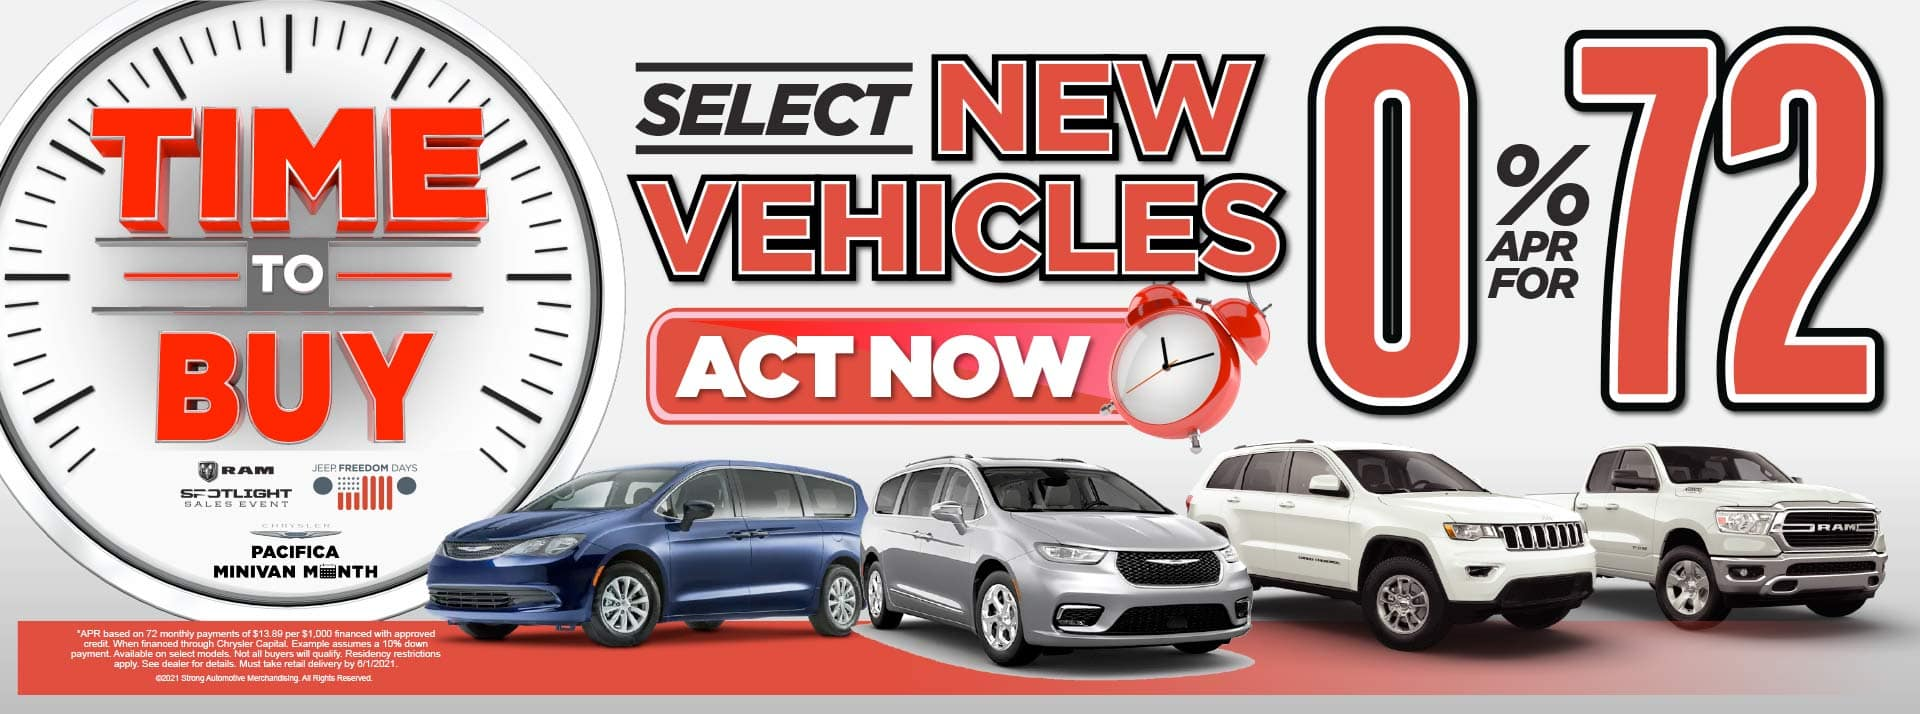 SELECT NEW VEHICLES 0% APR FOR 72 MOS* ACT NOW